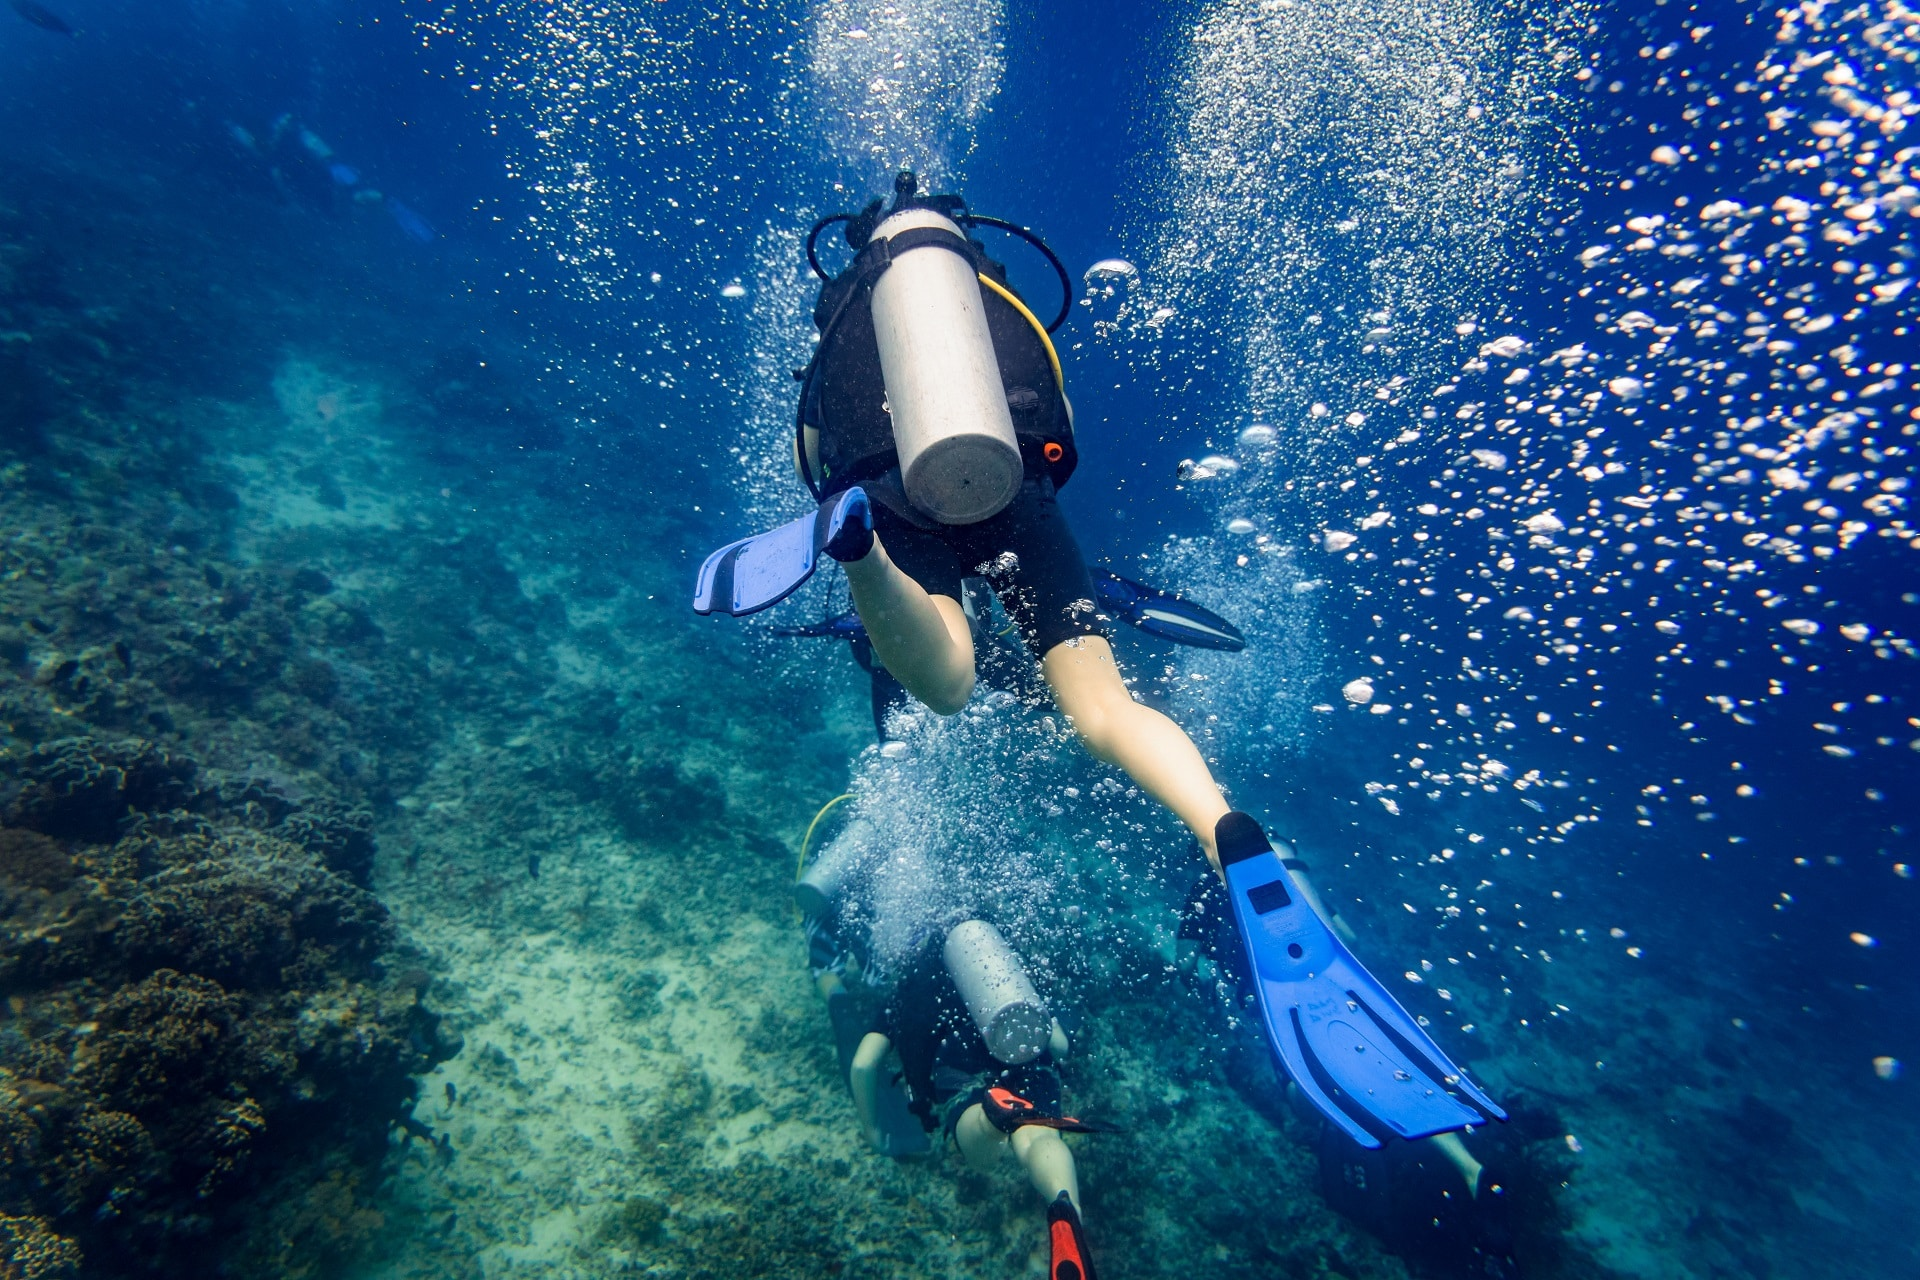 Tauchurlaub: Air bubbles emerging from diver at coral reef under water